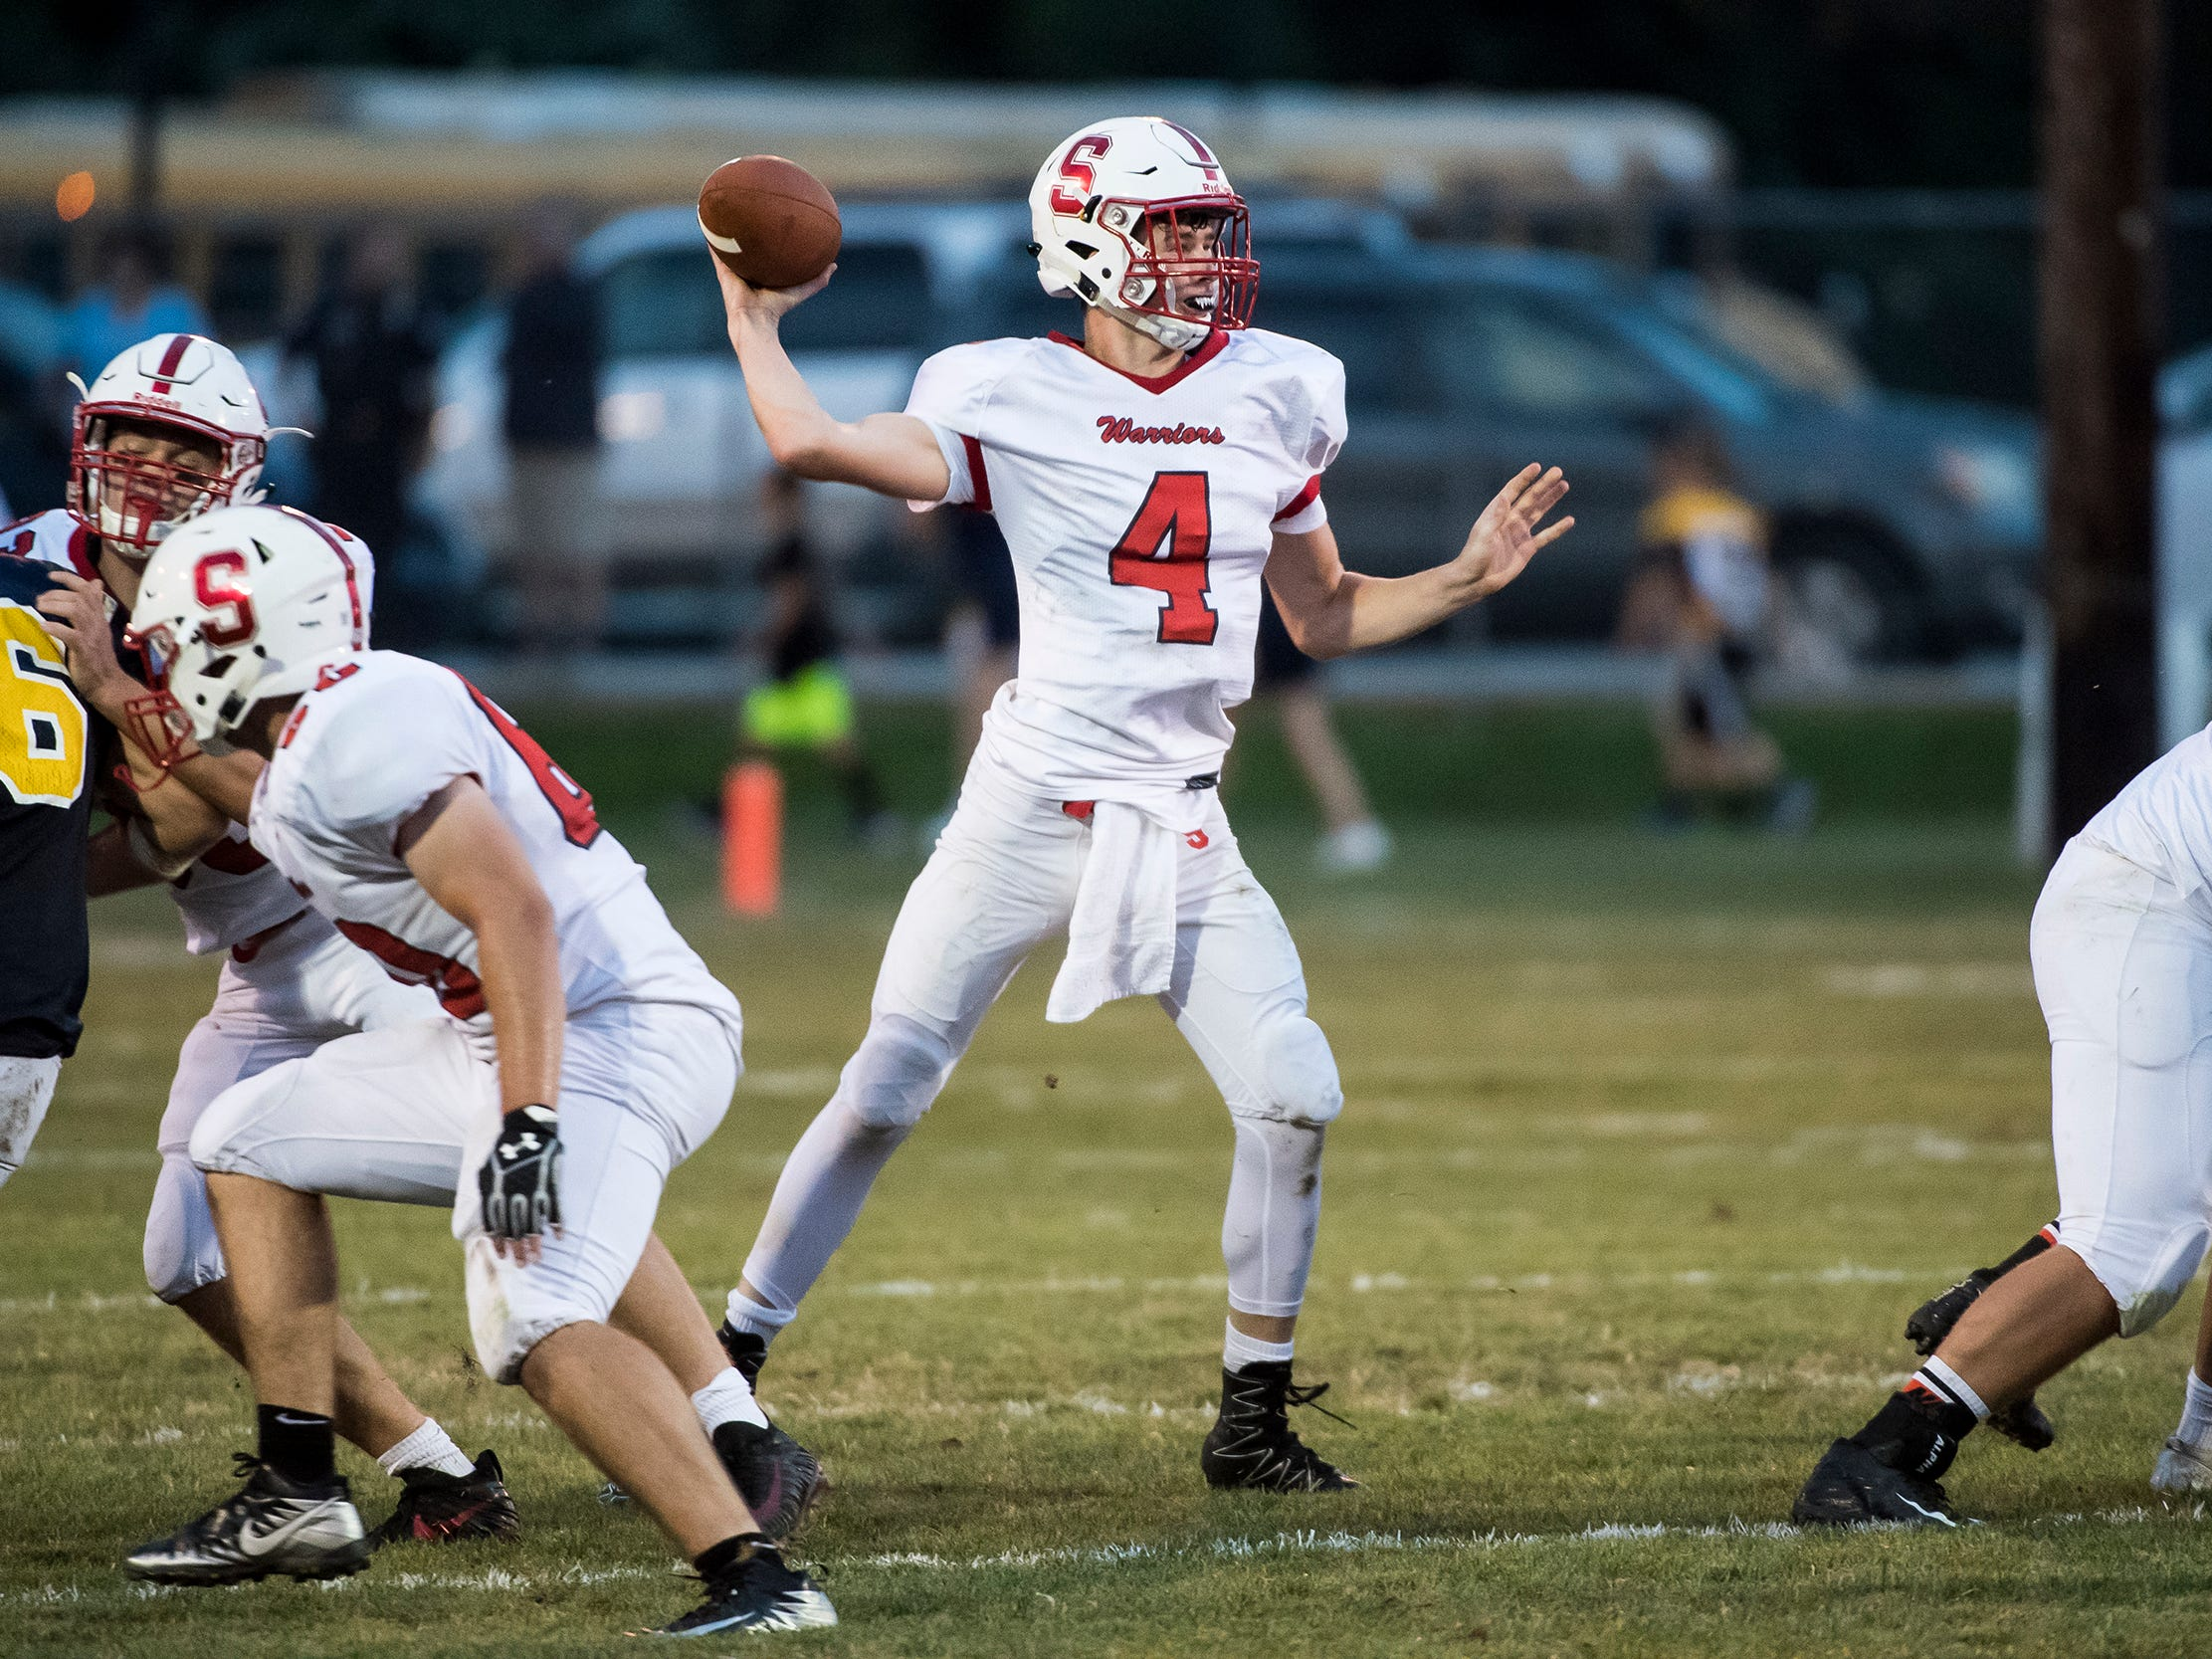 Susquehannock's Kenny Rhyne throws the ball against Littlestown on Friday, August 31, 2018. The Bolts beat the Warriors 29-14.